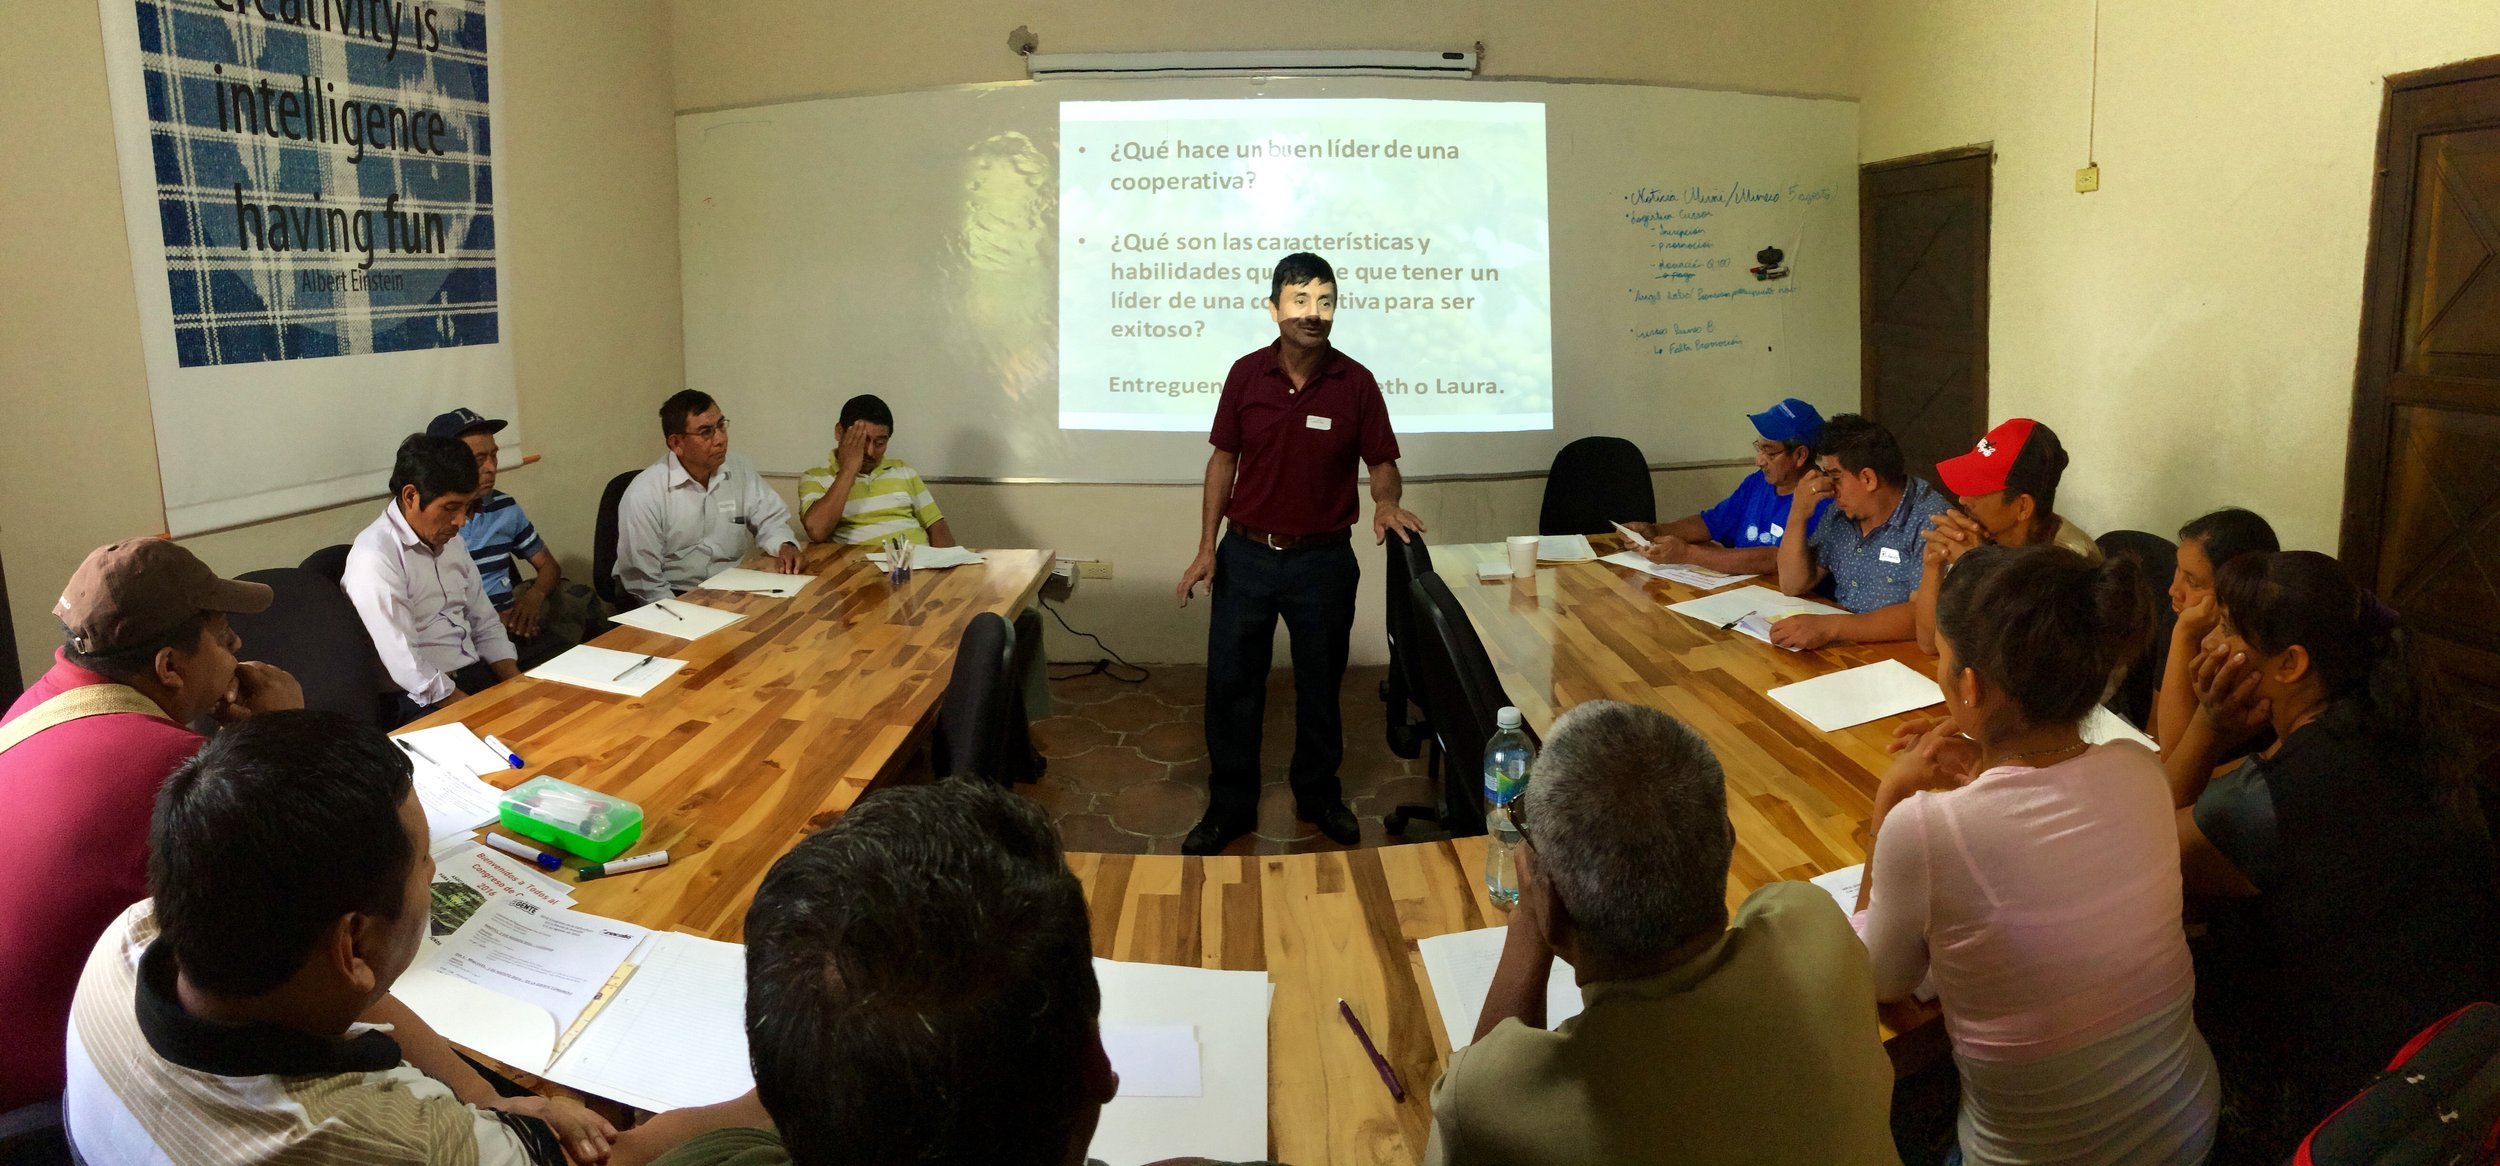 Timoteo Minas Leading the Congress Discussions.